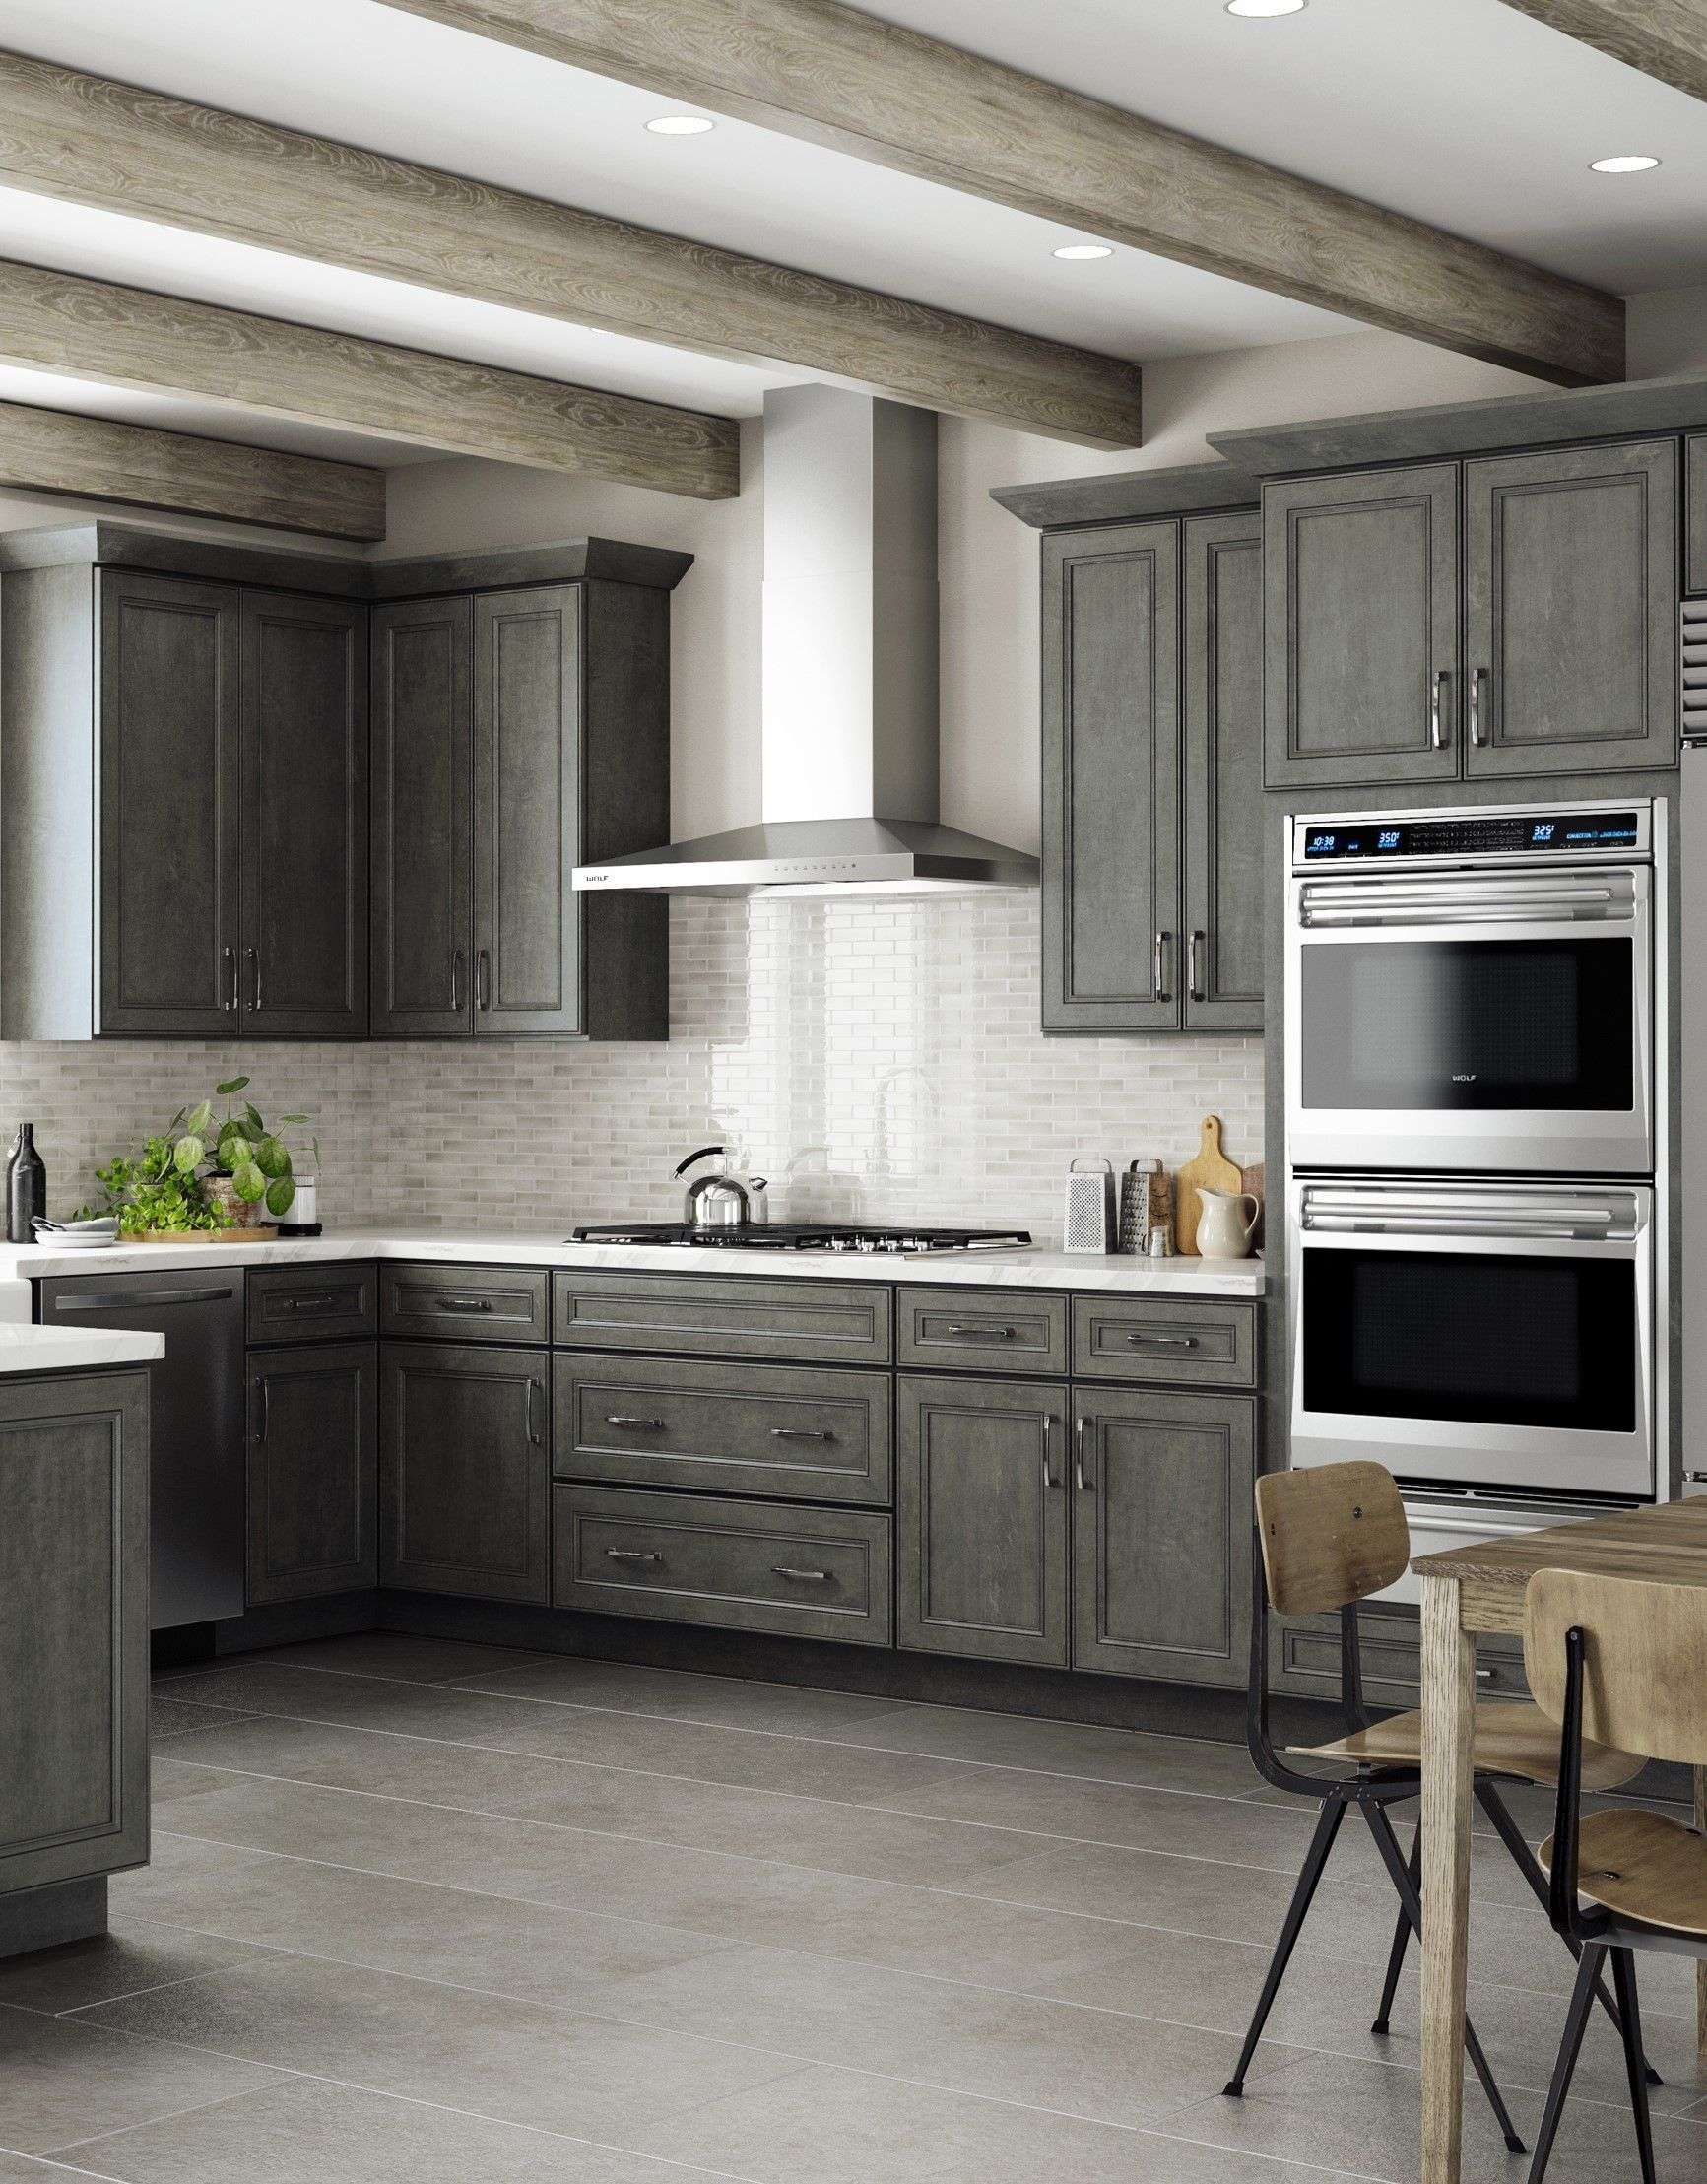 Revamp Your Kitchen This Spring With Our York Driftwood Grey Ready To Assemble Kitchen Cabinets Sho Cheap Kitchen Cabinets Kitchen Remodel 3d Kitchen Design